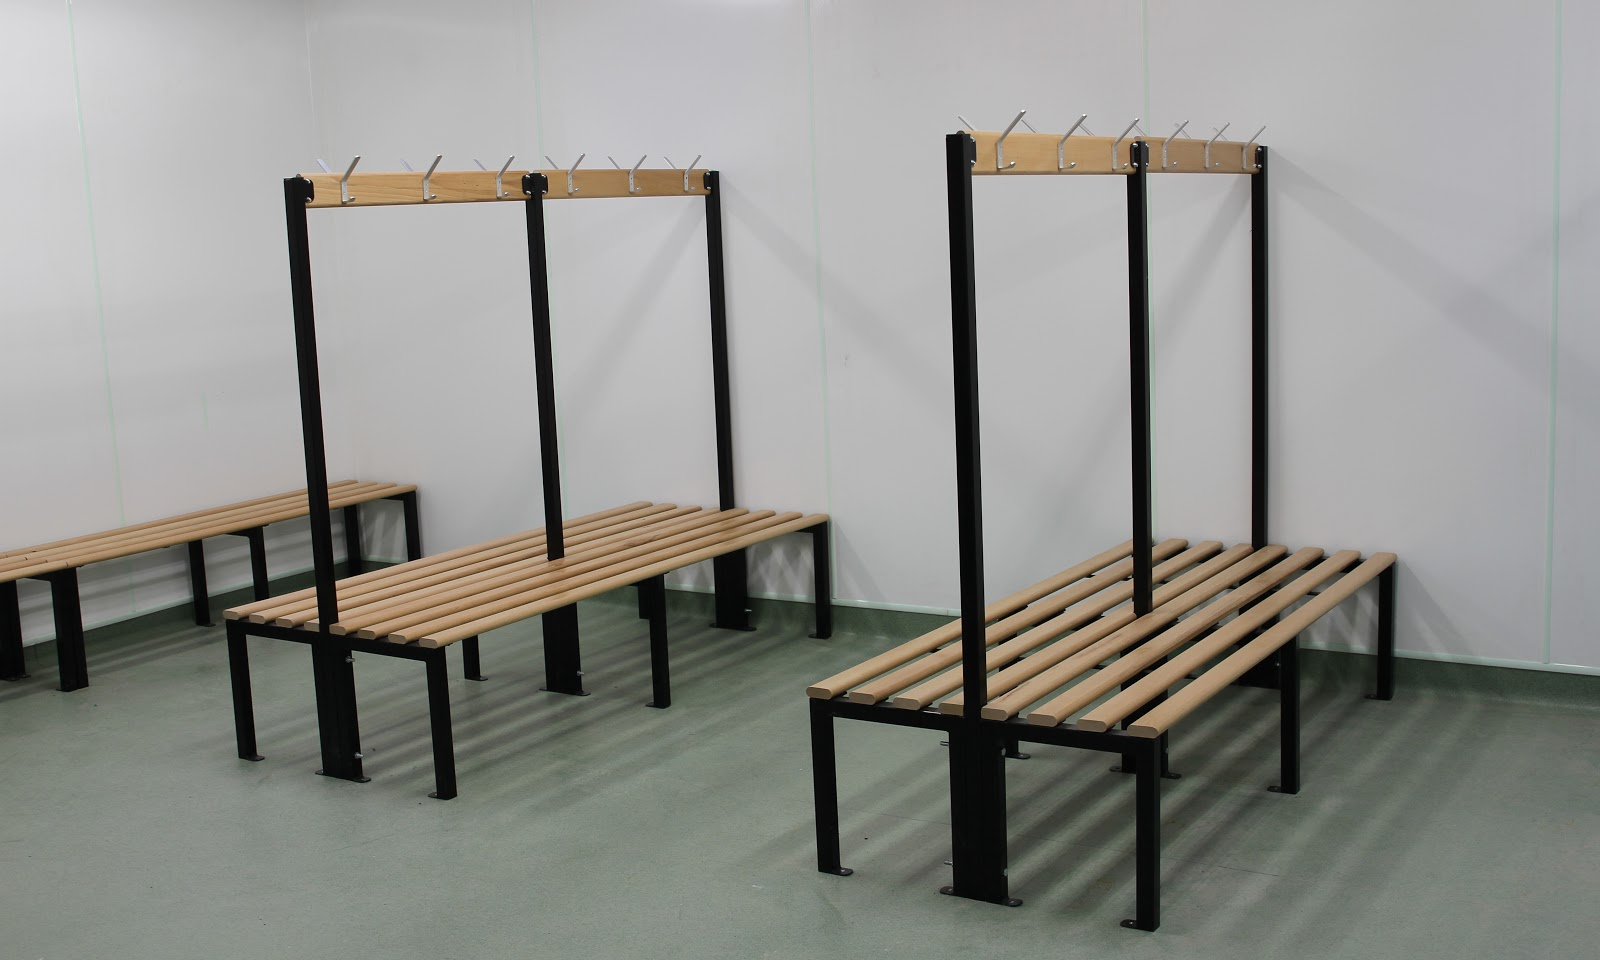 Versa Uk Ltd Changing Room Benches